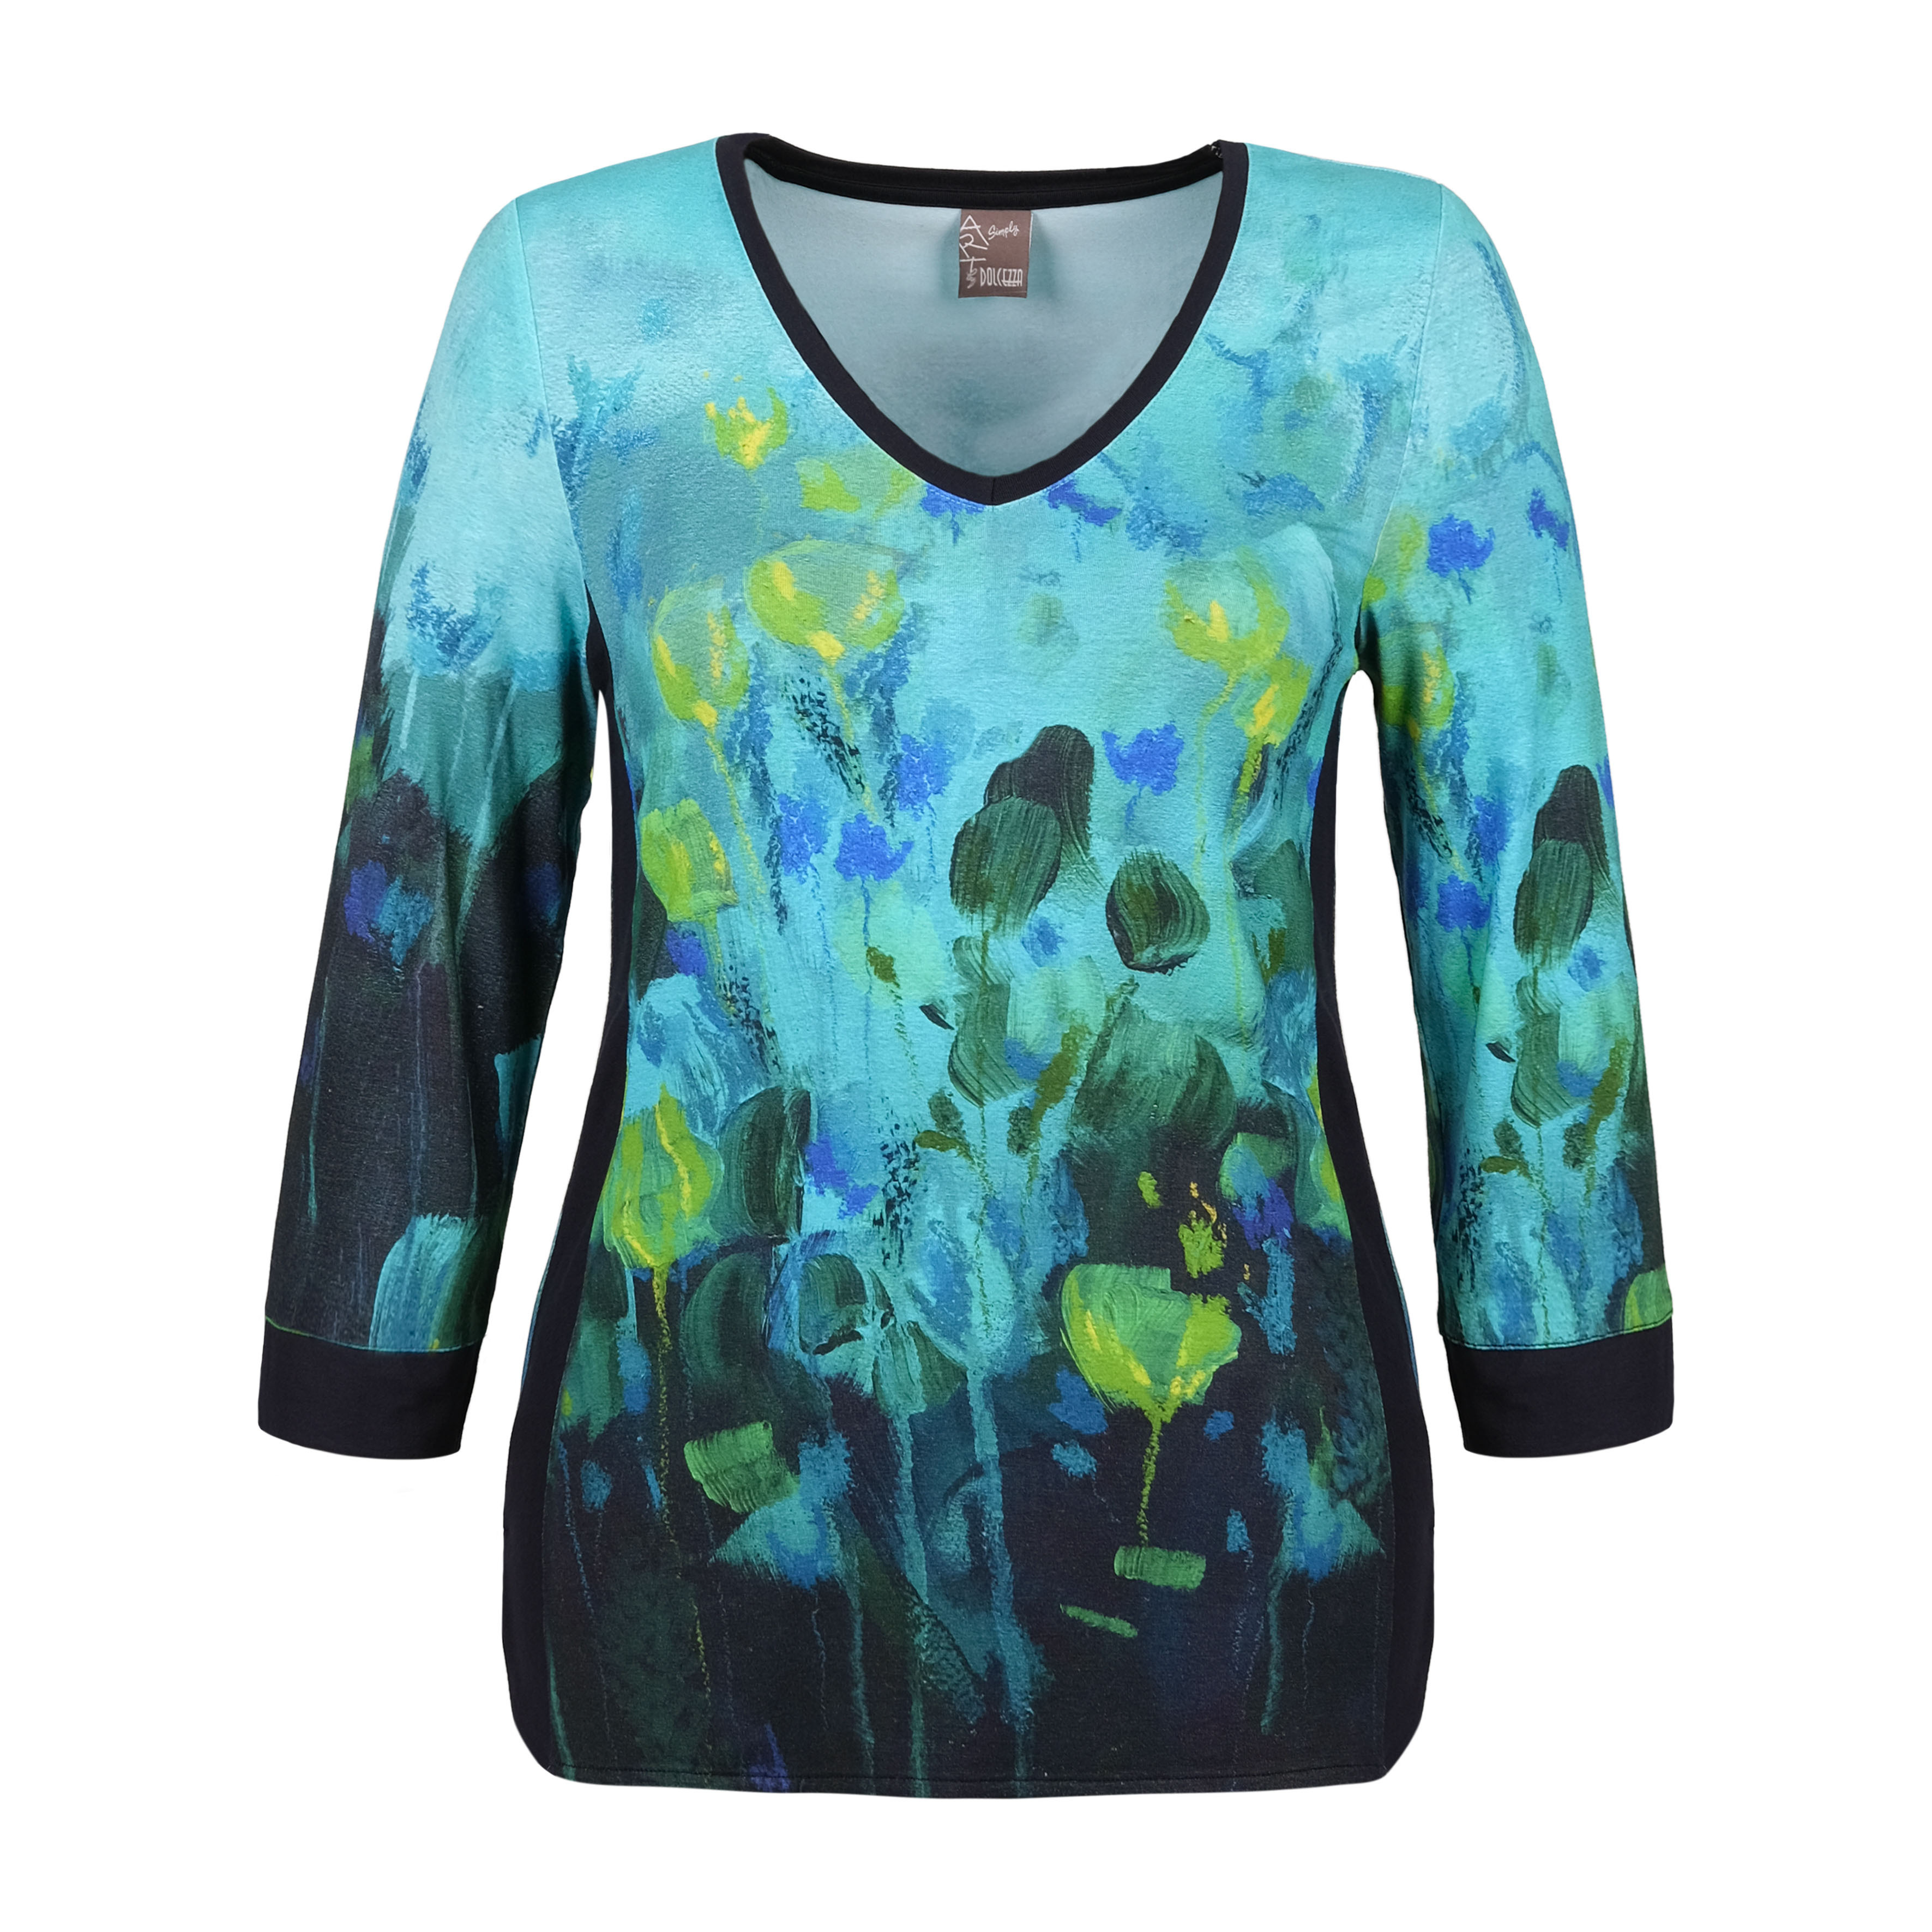 Simply Art Dolcezza: Fantaisie Floralge Abstract Art T-Shirt (1 Available at a Special Price!) Dolcezza_SimplyArt_70632